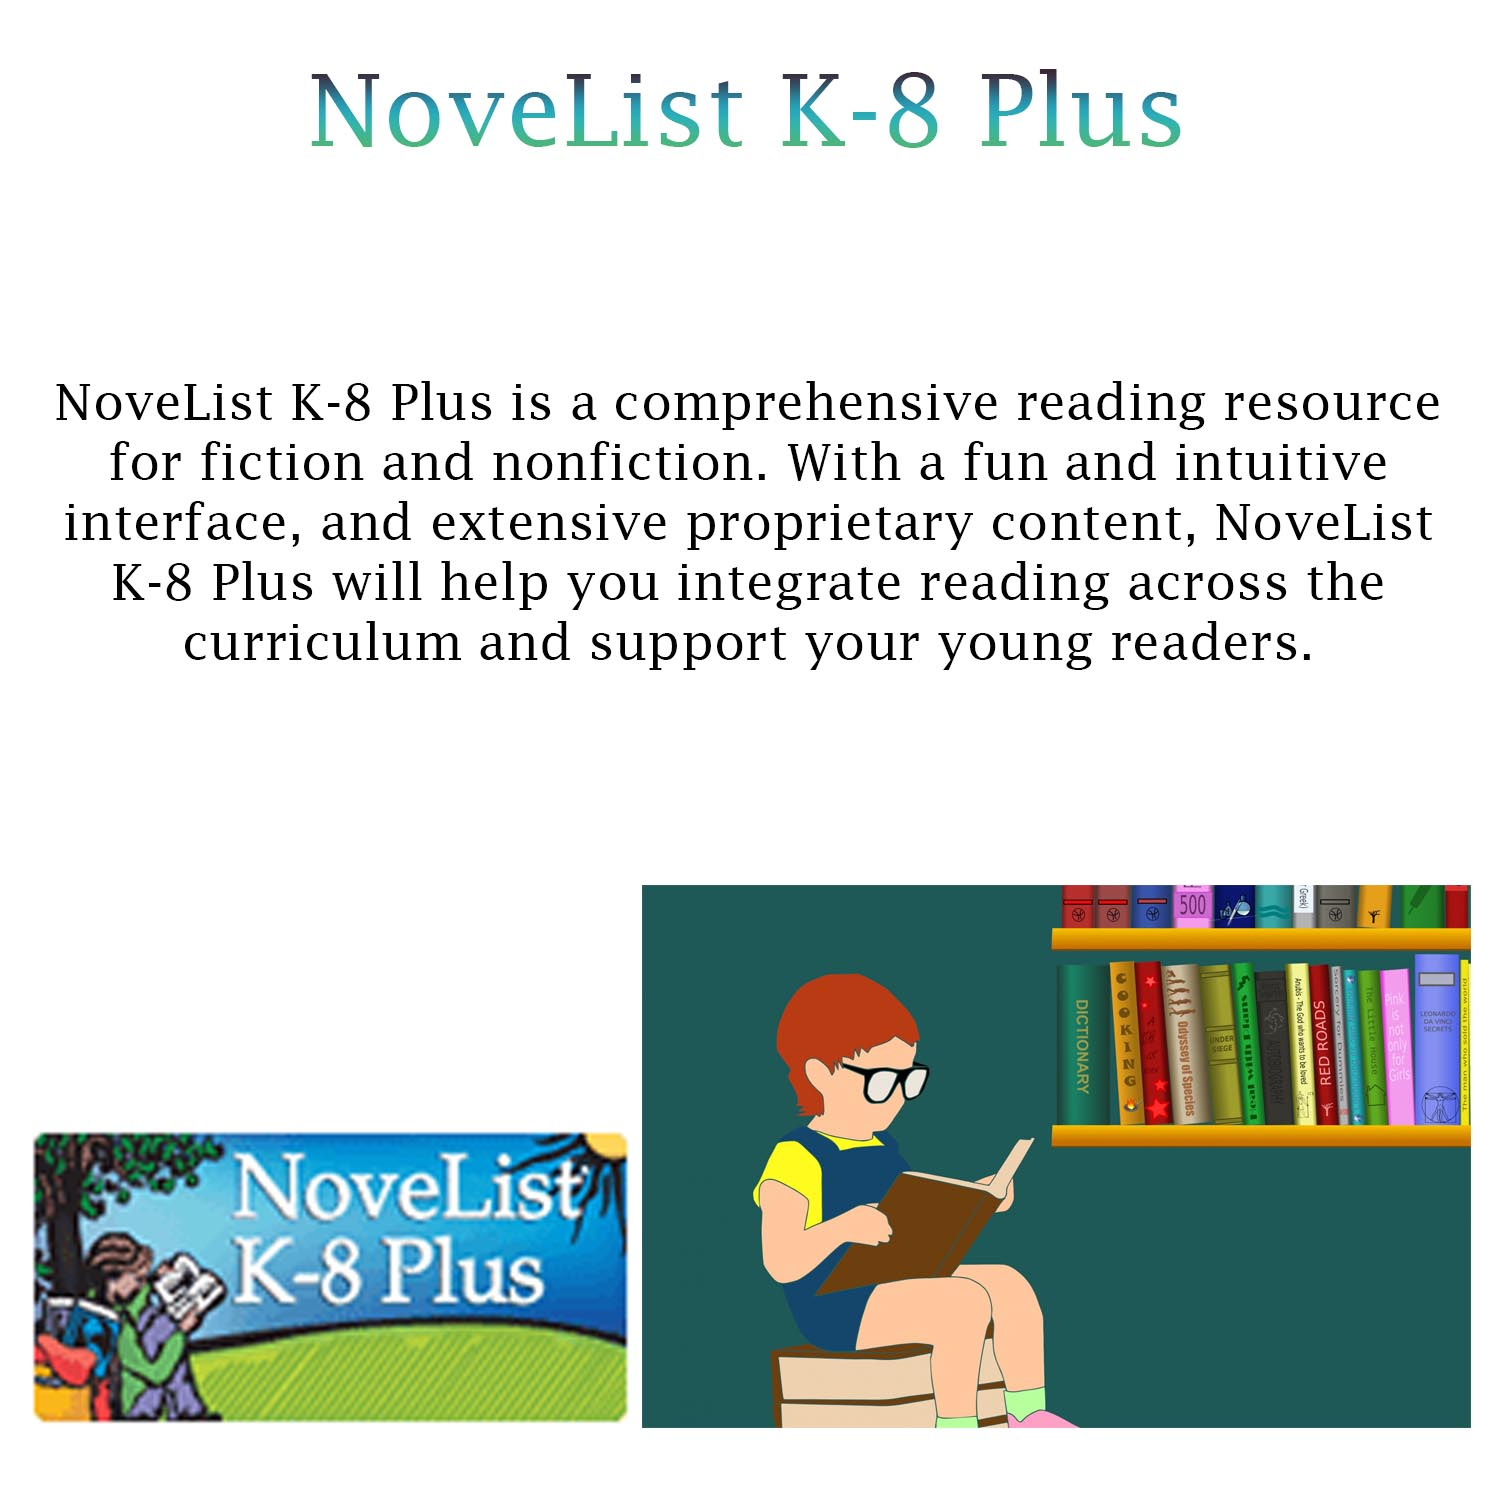 Small image with a synopsis of NoveList K-8 Plus with a clickable link